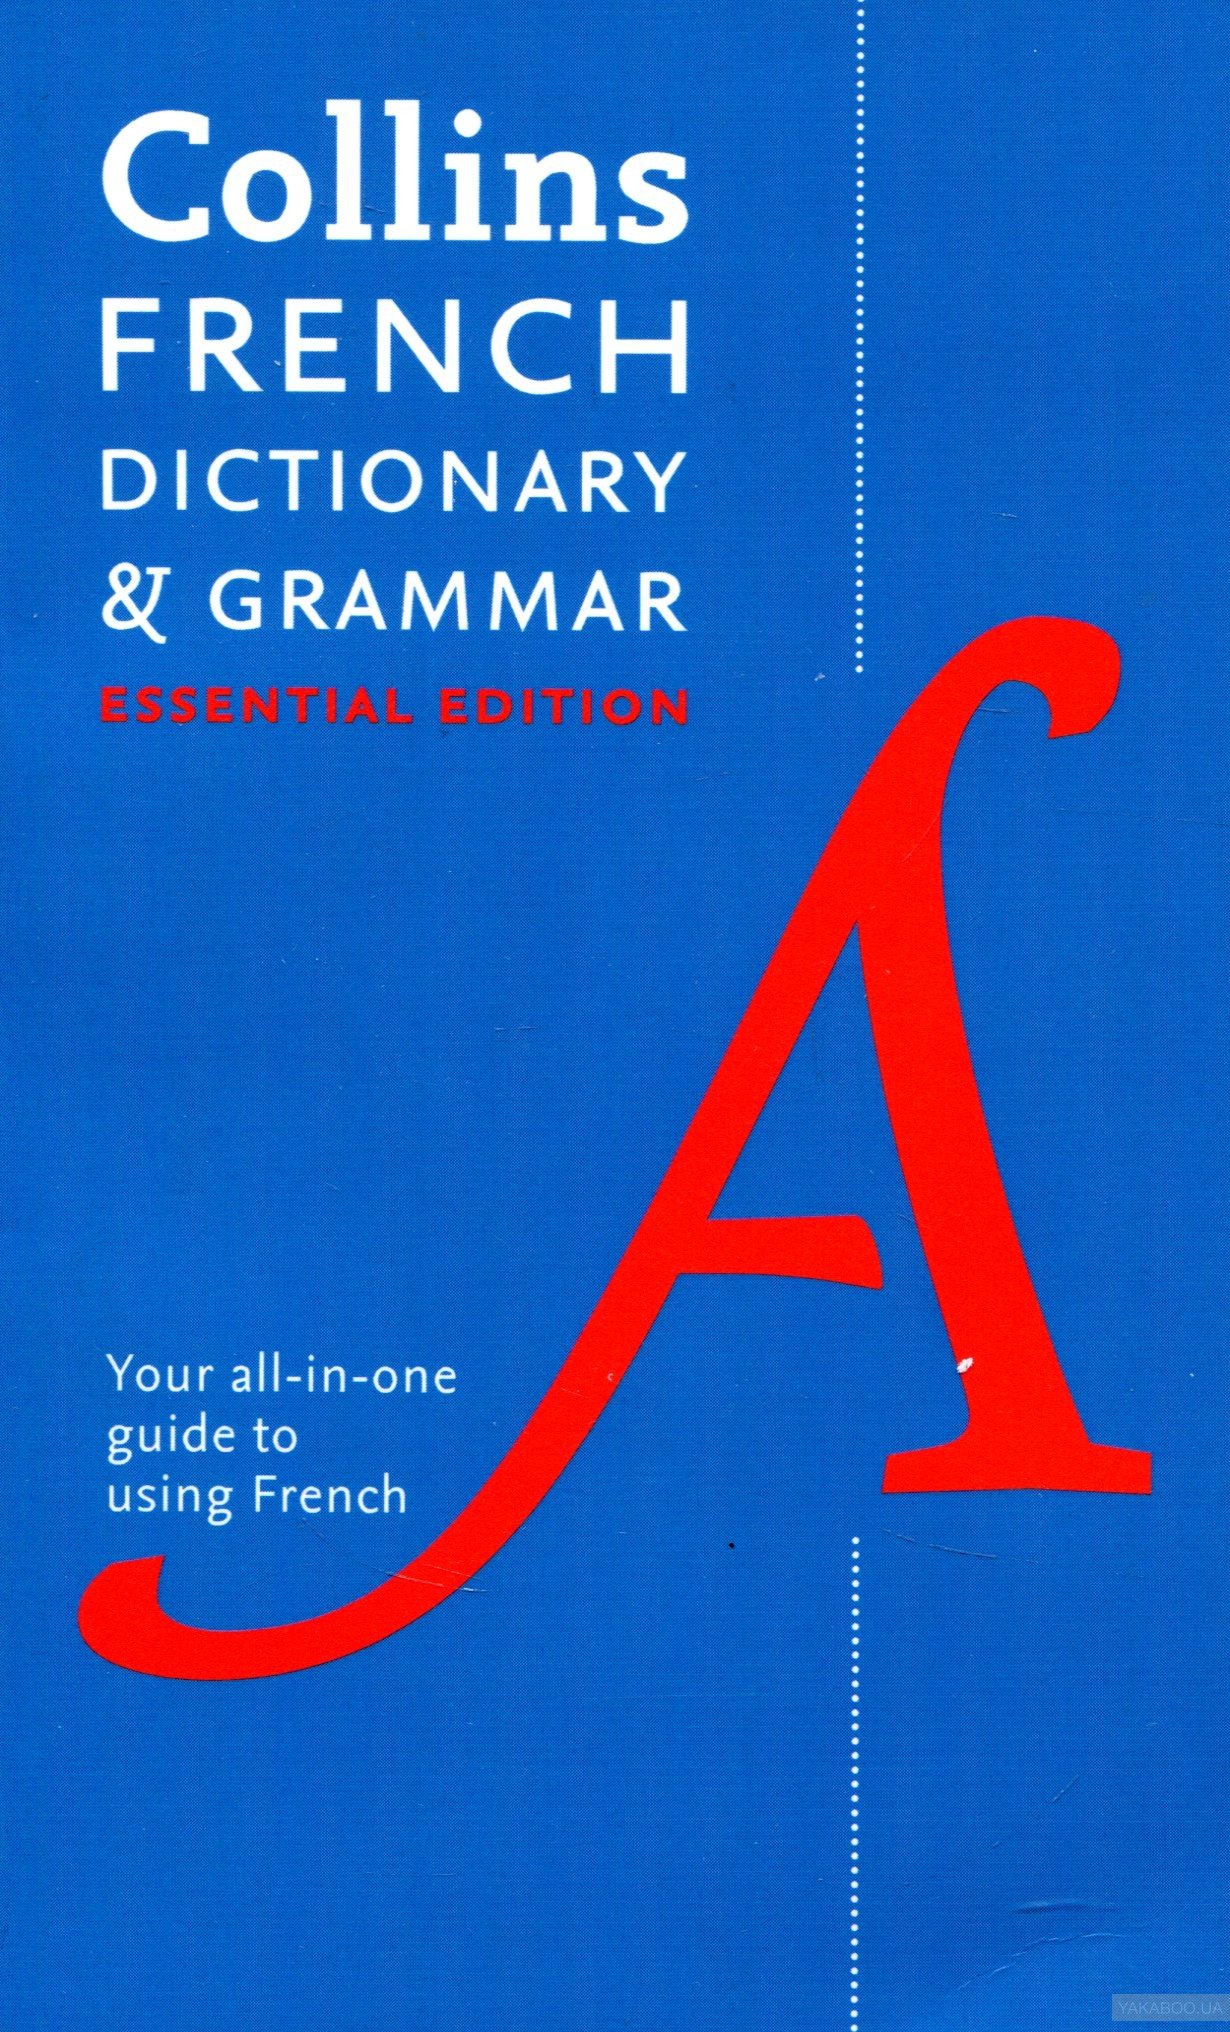 Collins. French Essential: Dictionary and Grammar